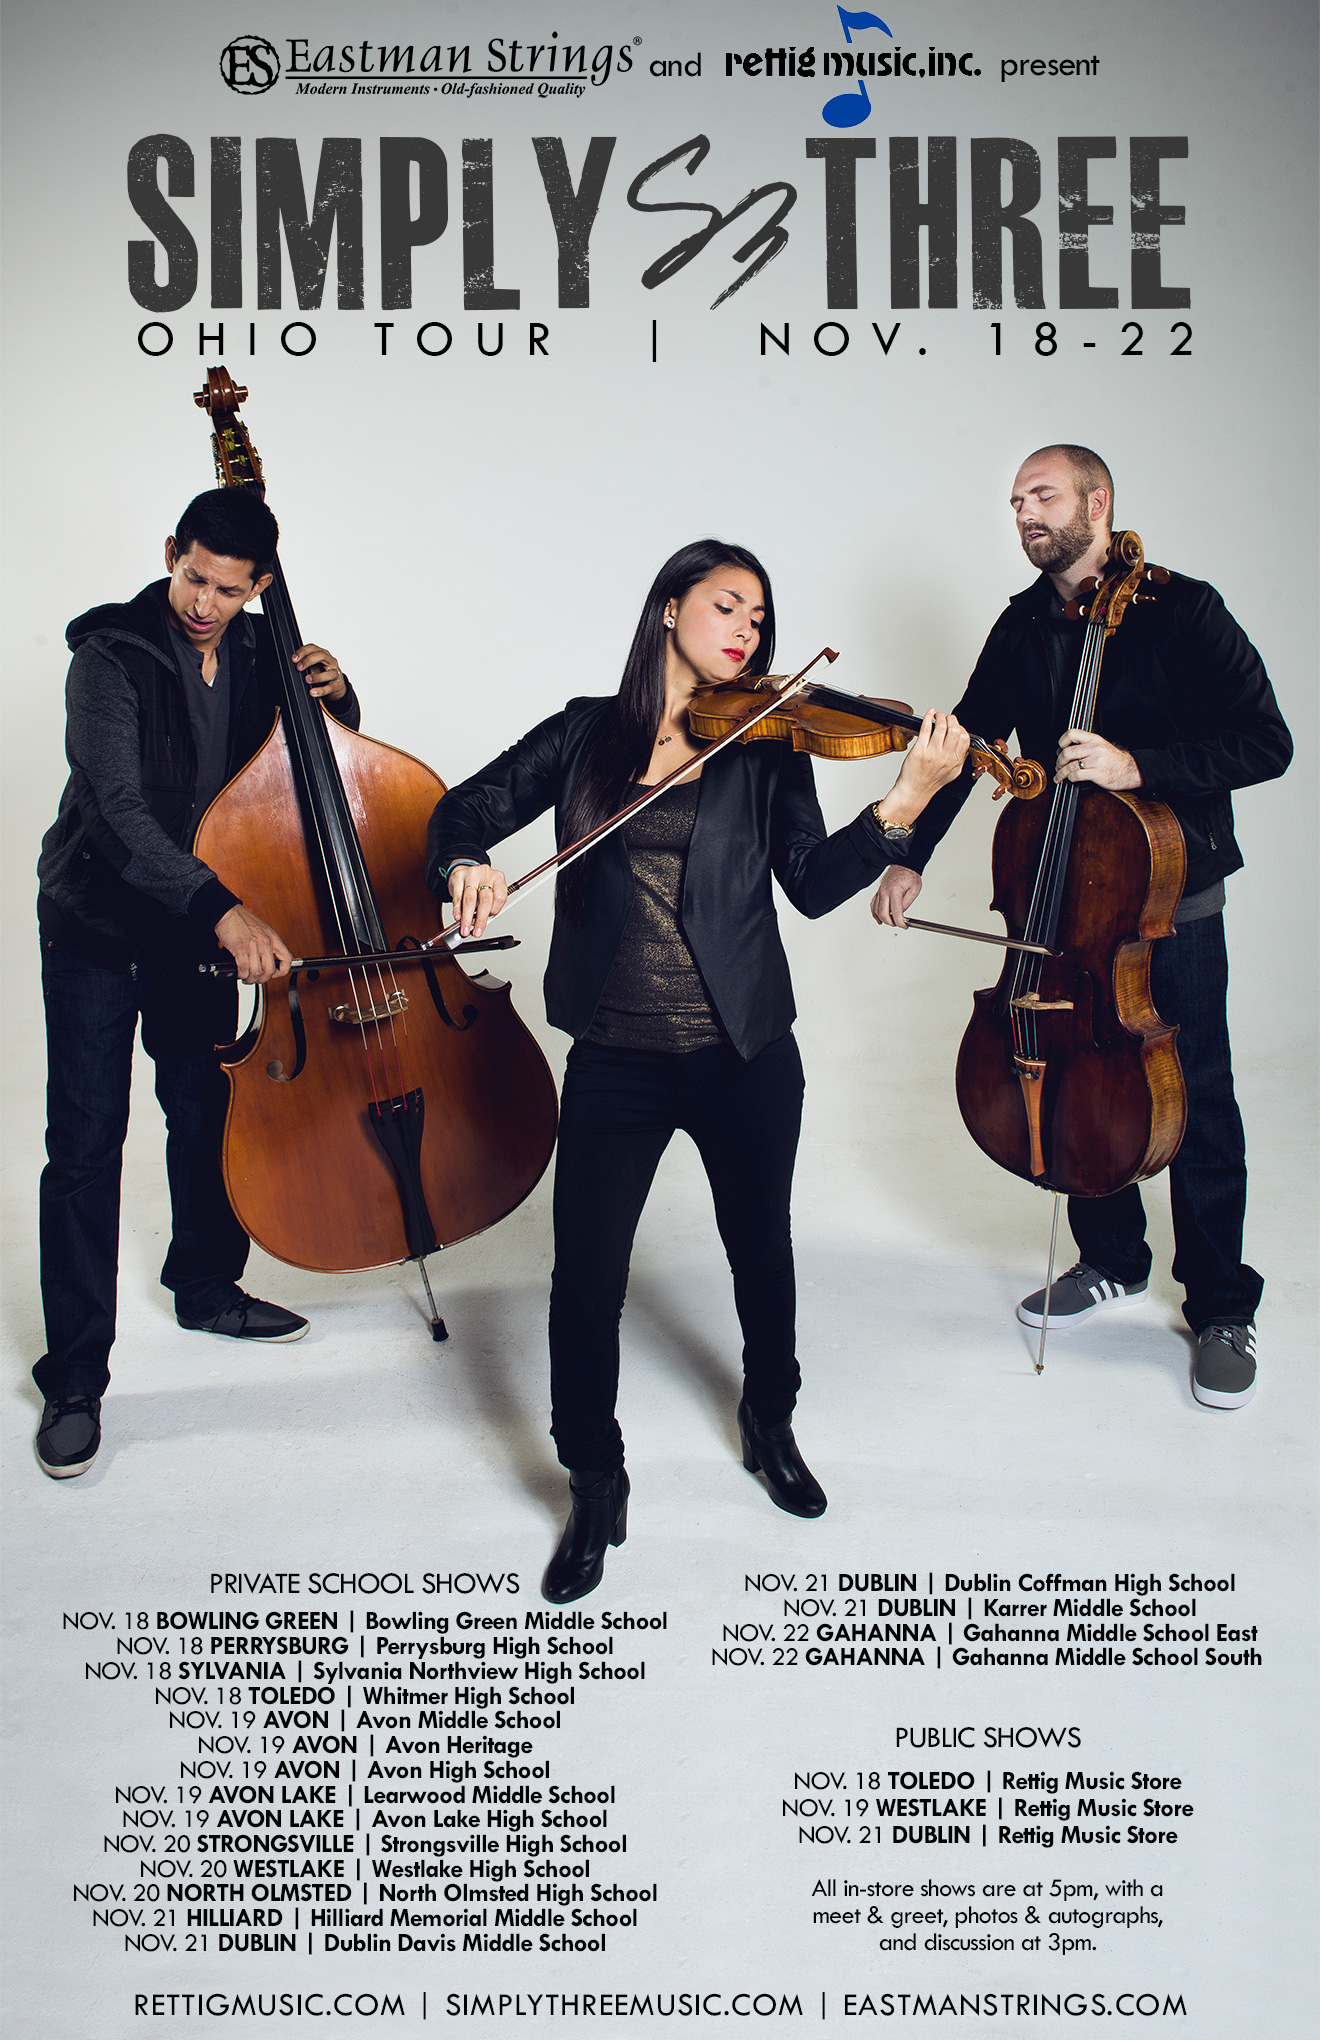 Eastman Strings and Rettig Music Present Simply Three Ohio Tour